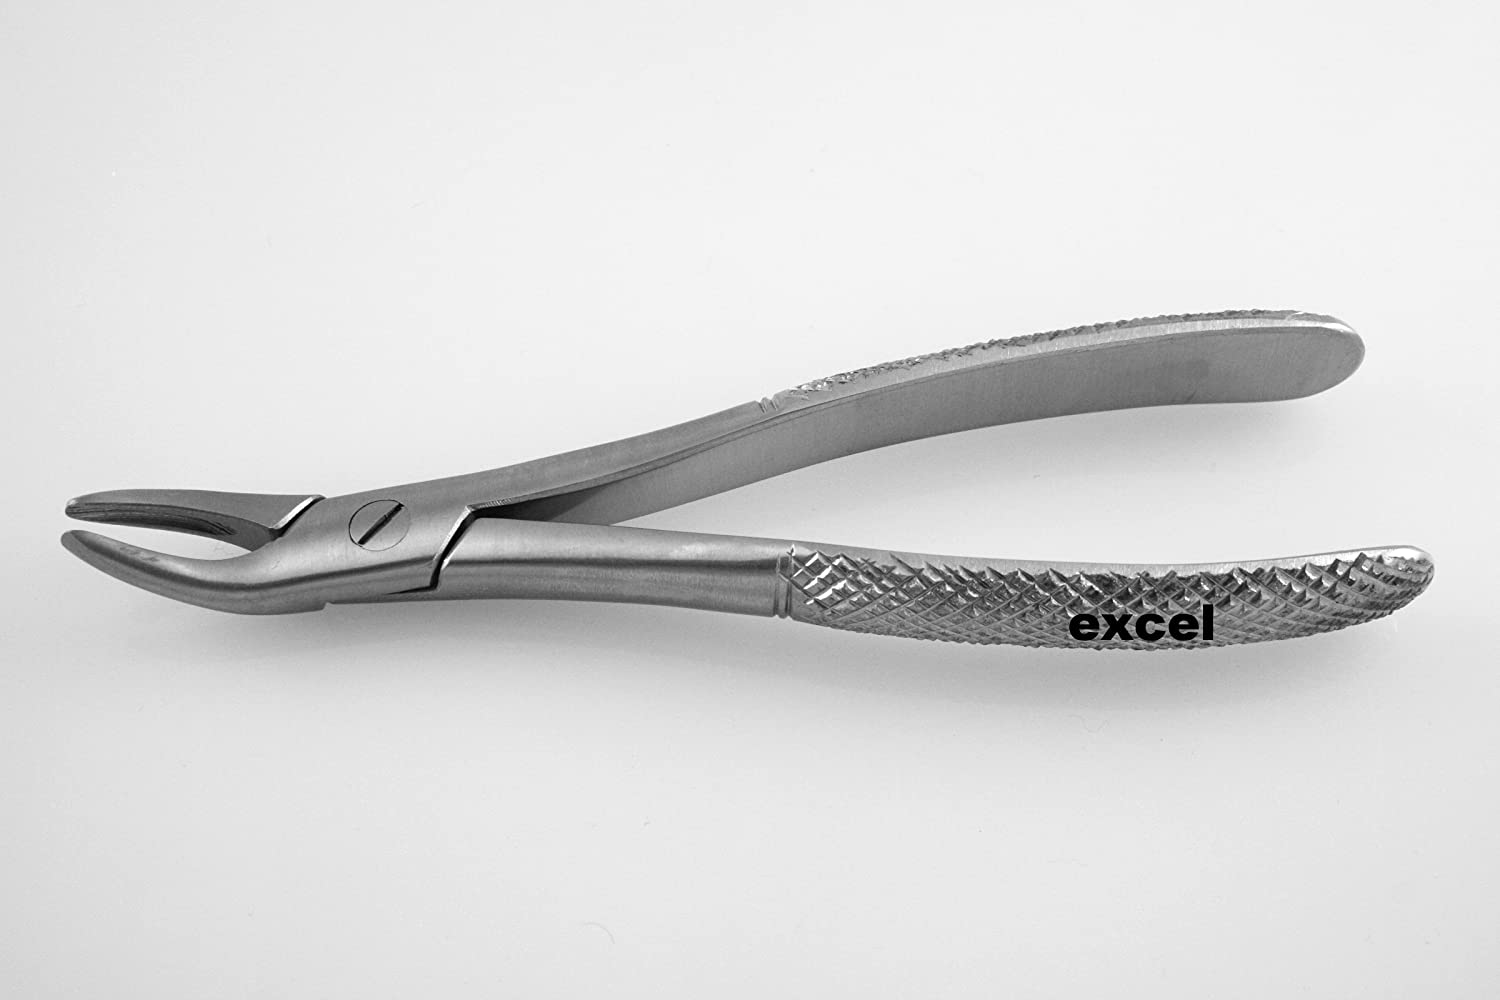 Witzel Dental Extracting Forceps #116 - SurgicalExcel 85-116 automatic text summarization by extracting significant sentences